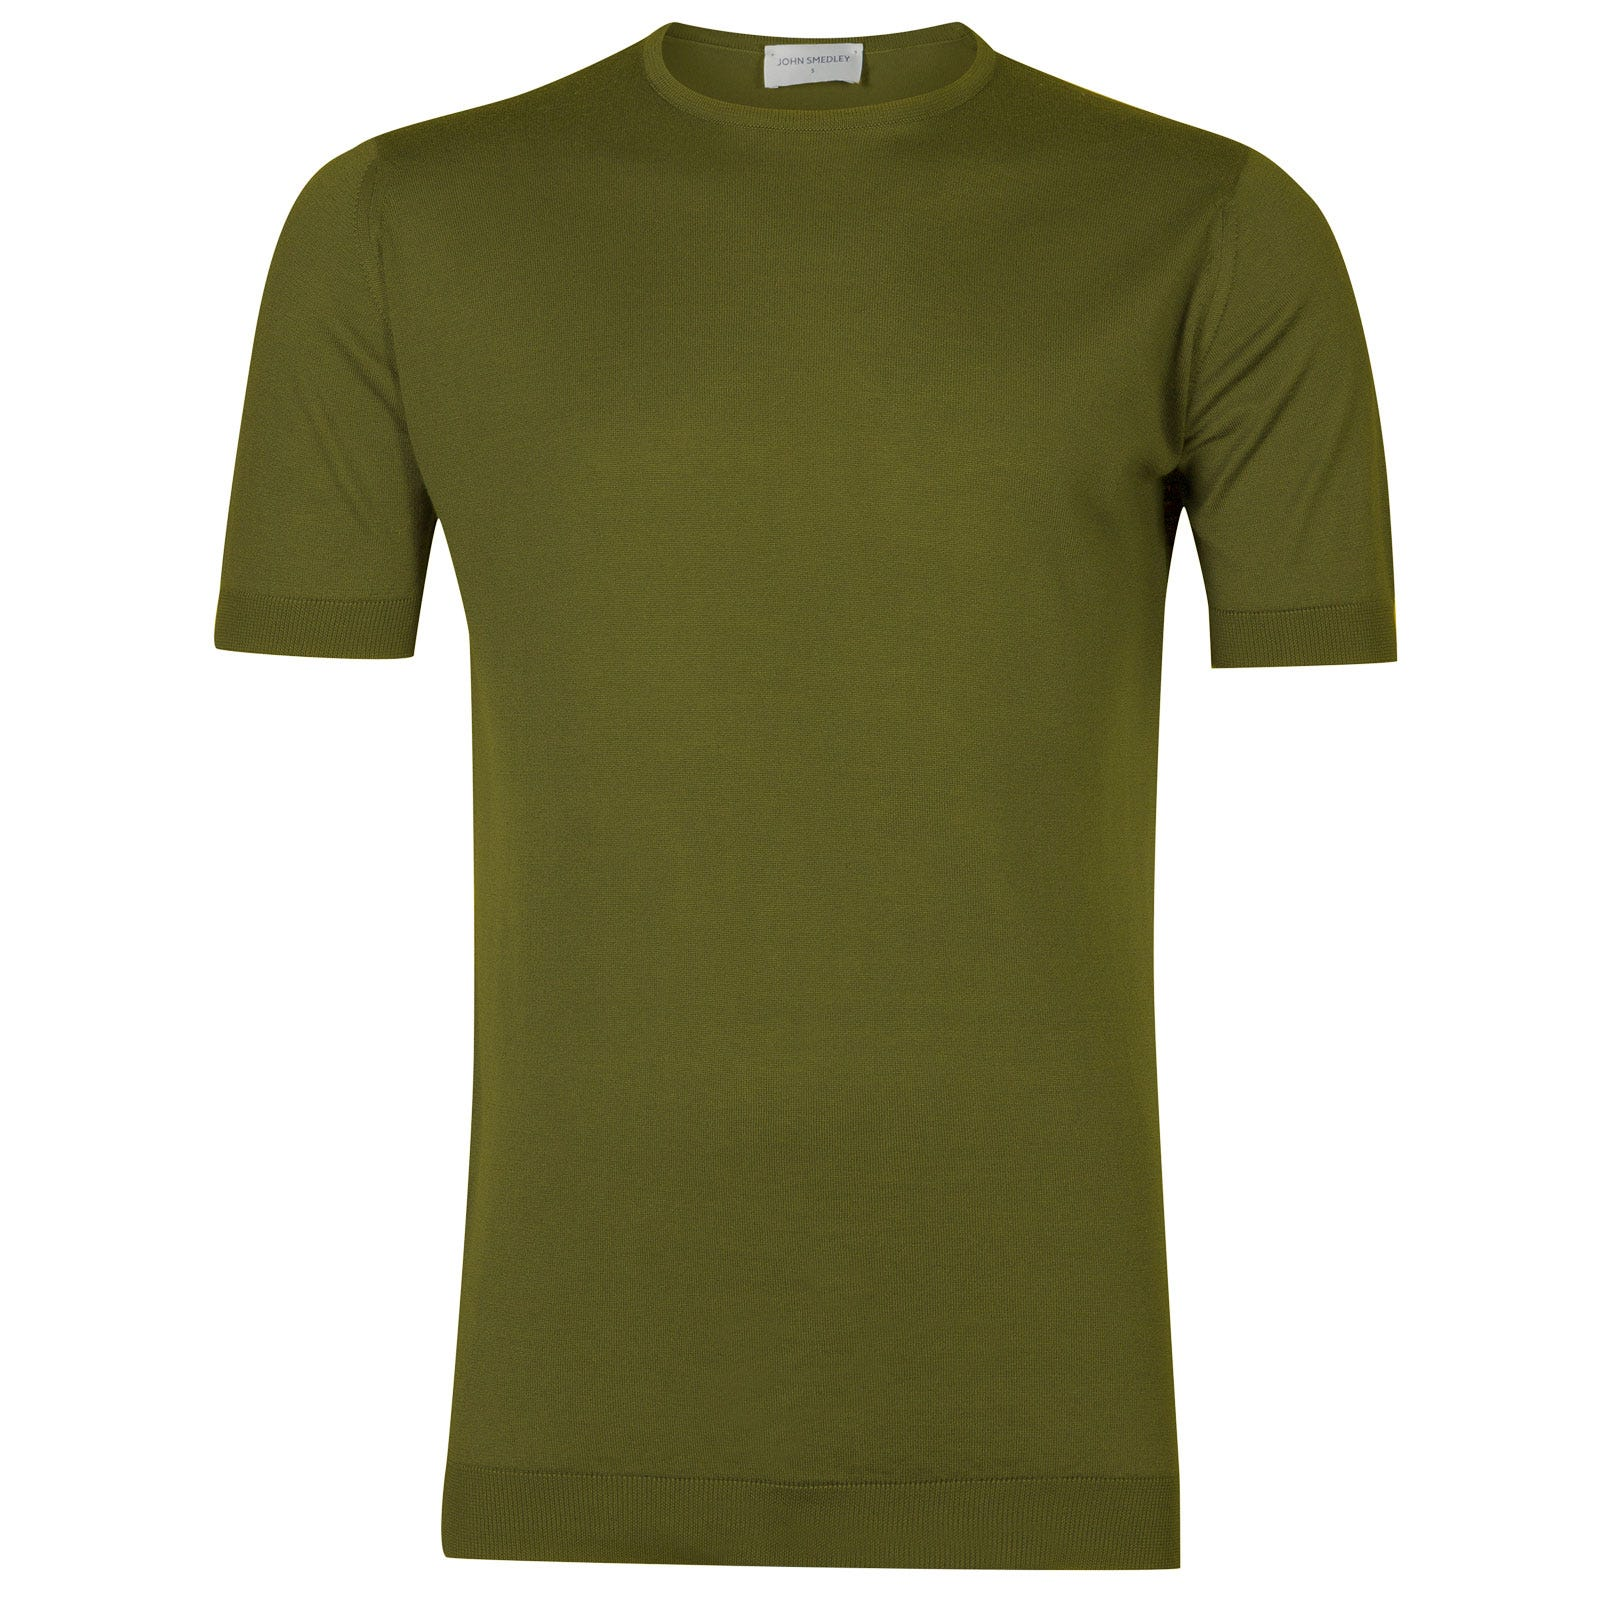 John Smedley belden Sea Island Cotton T-shirt in Lumsdale Green-S